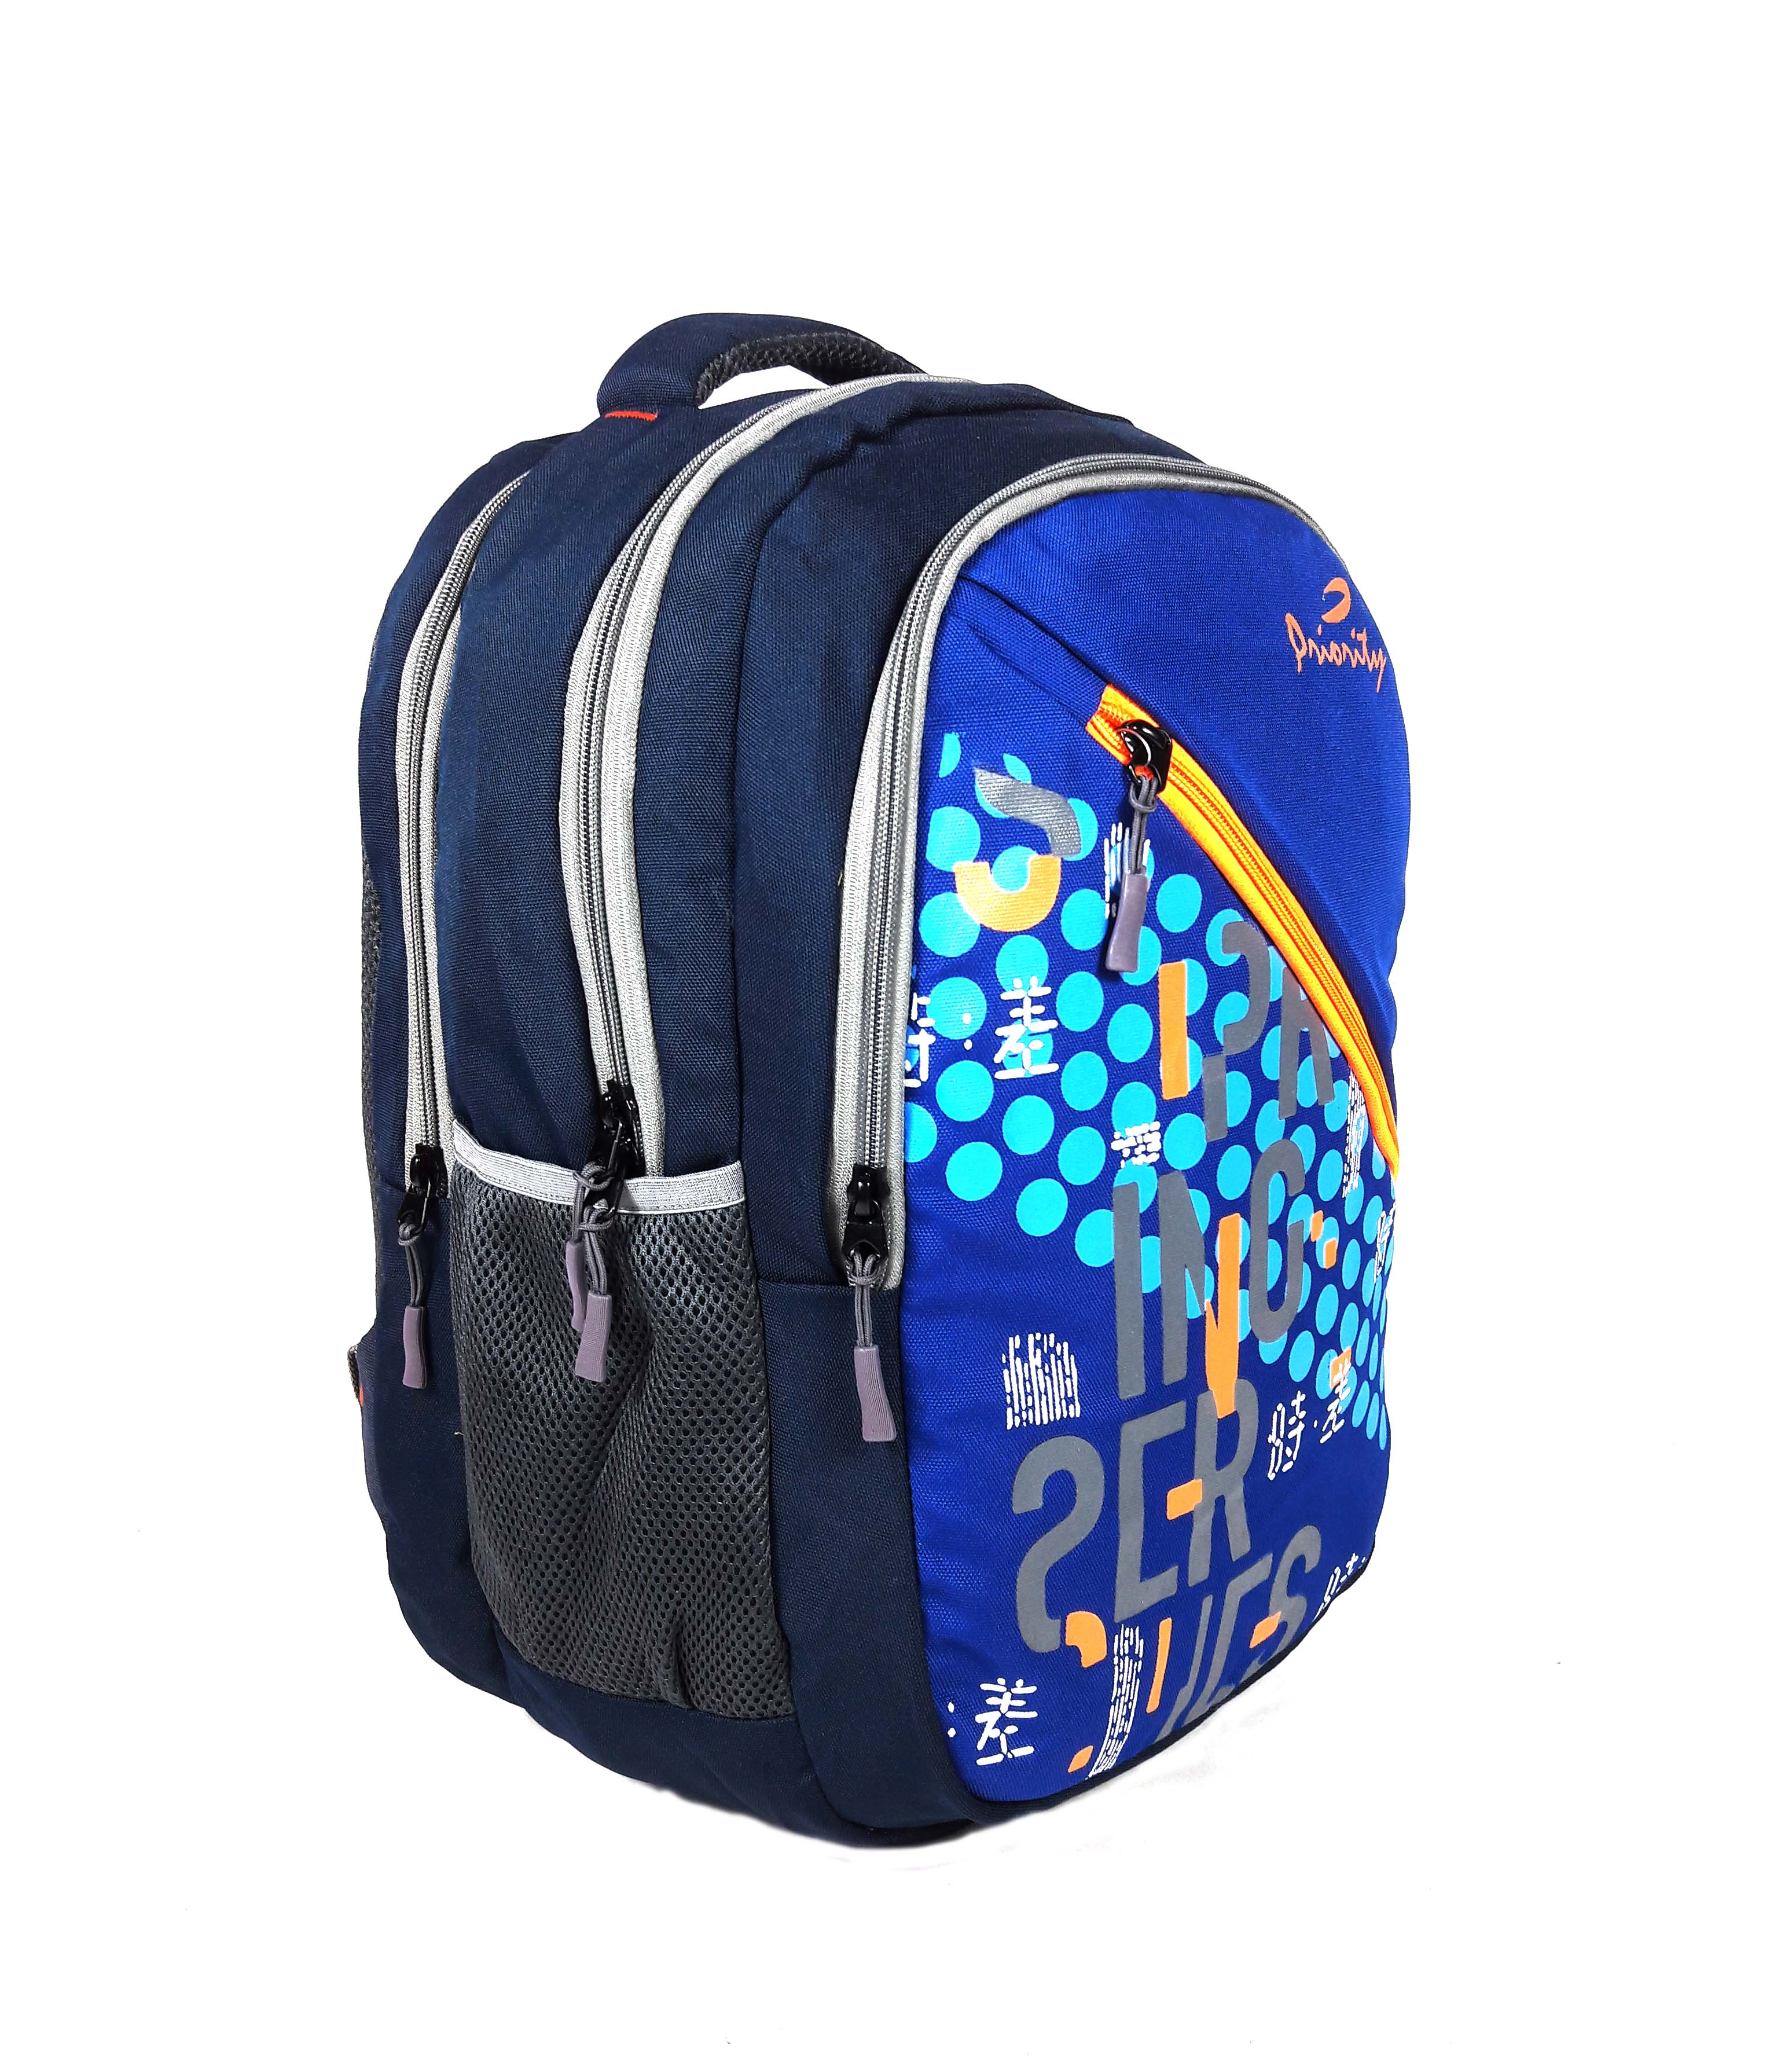 PRIORITY LAPTOP BACKPACK USE FOR LAPTOP SIZE 15.6 SCHOOL COLLAGE BAGS